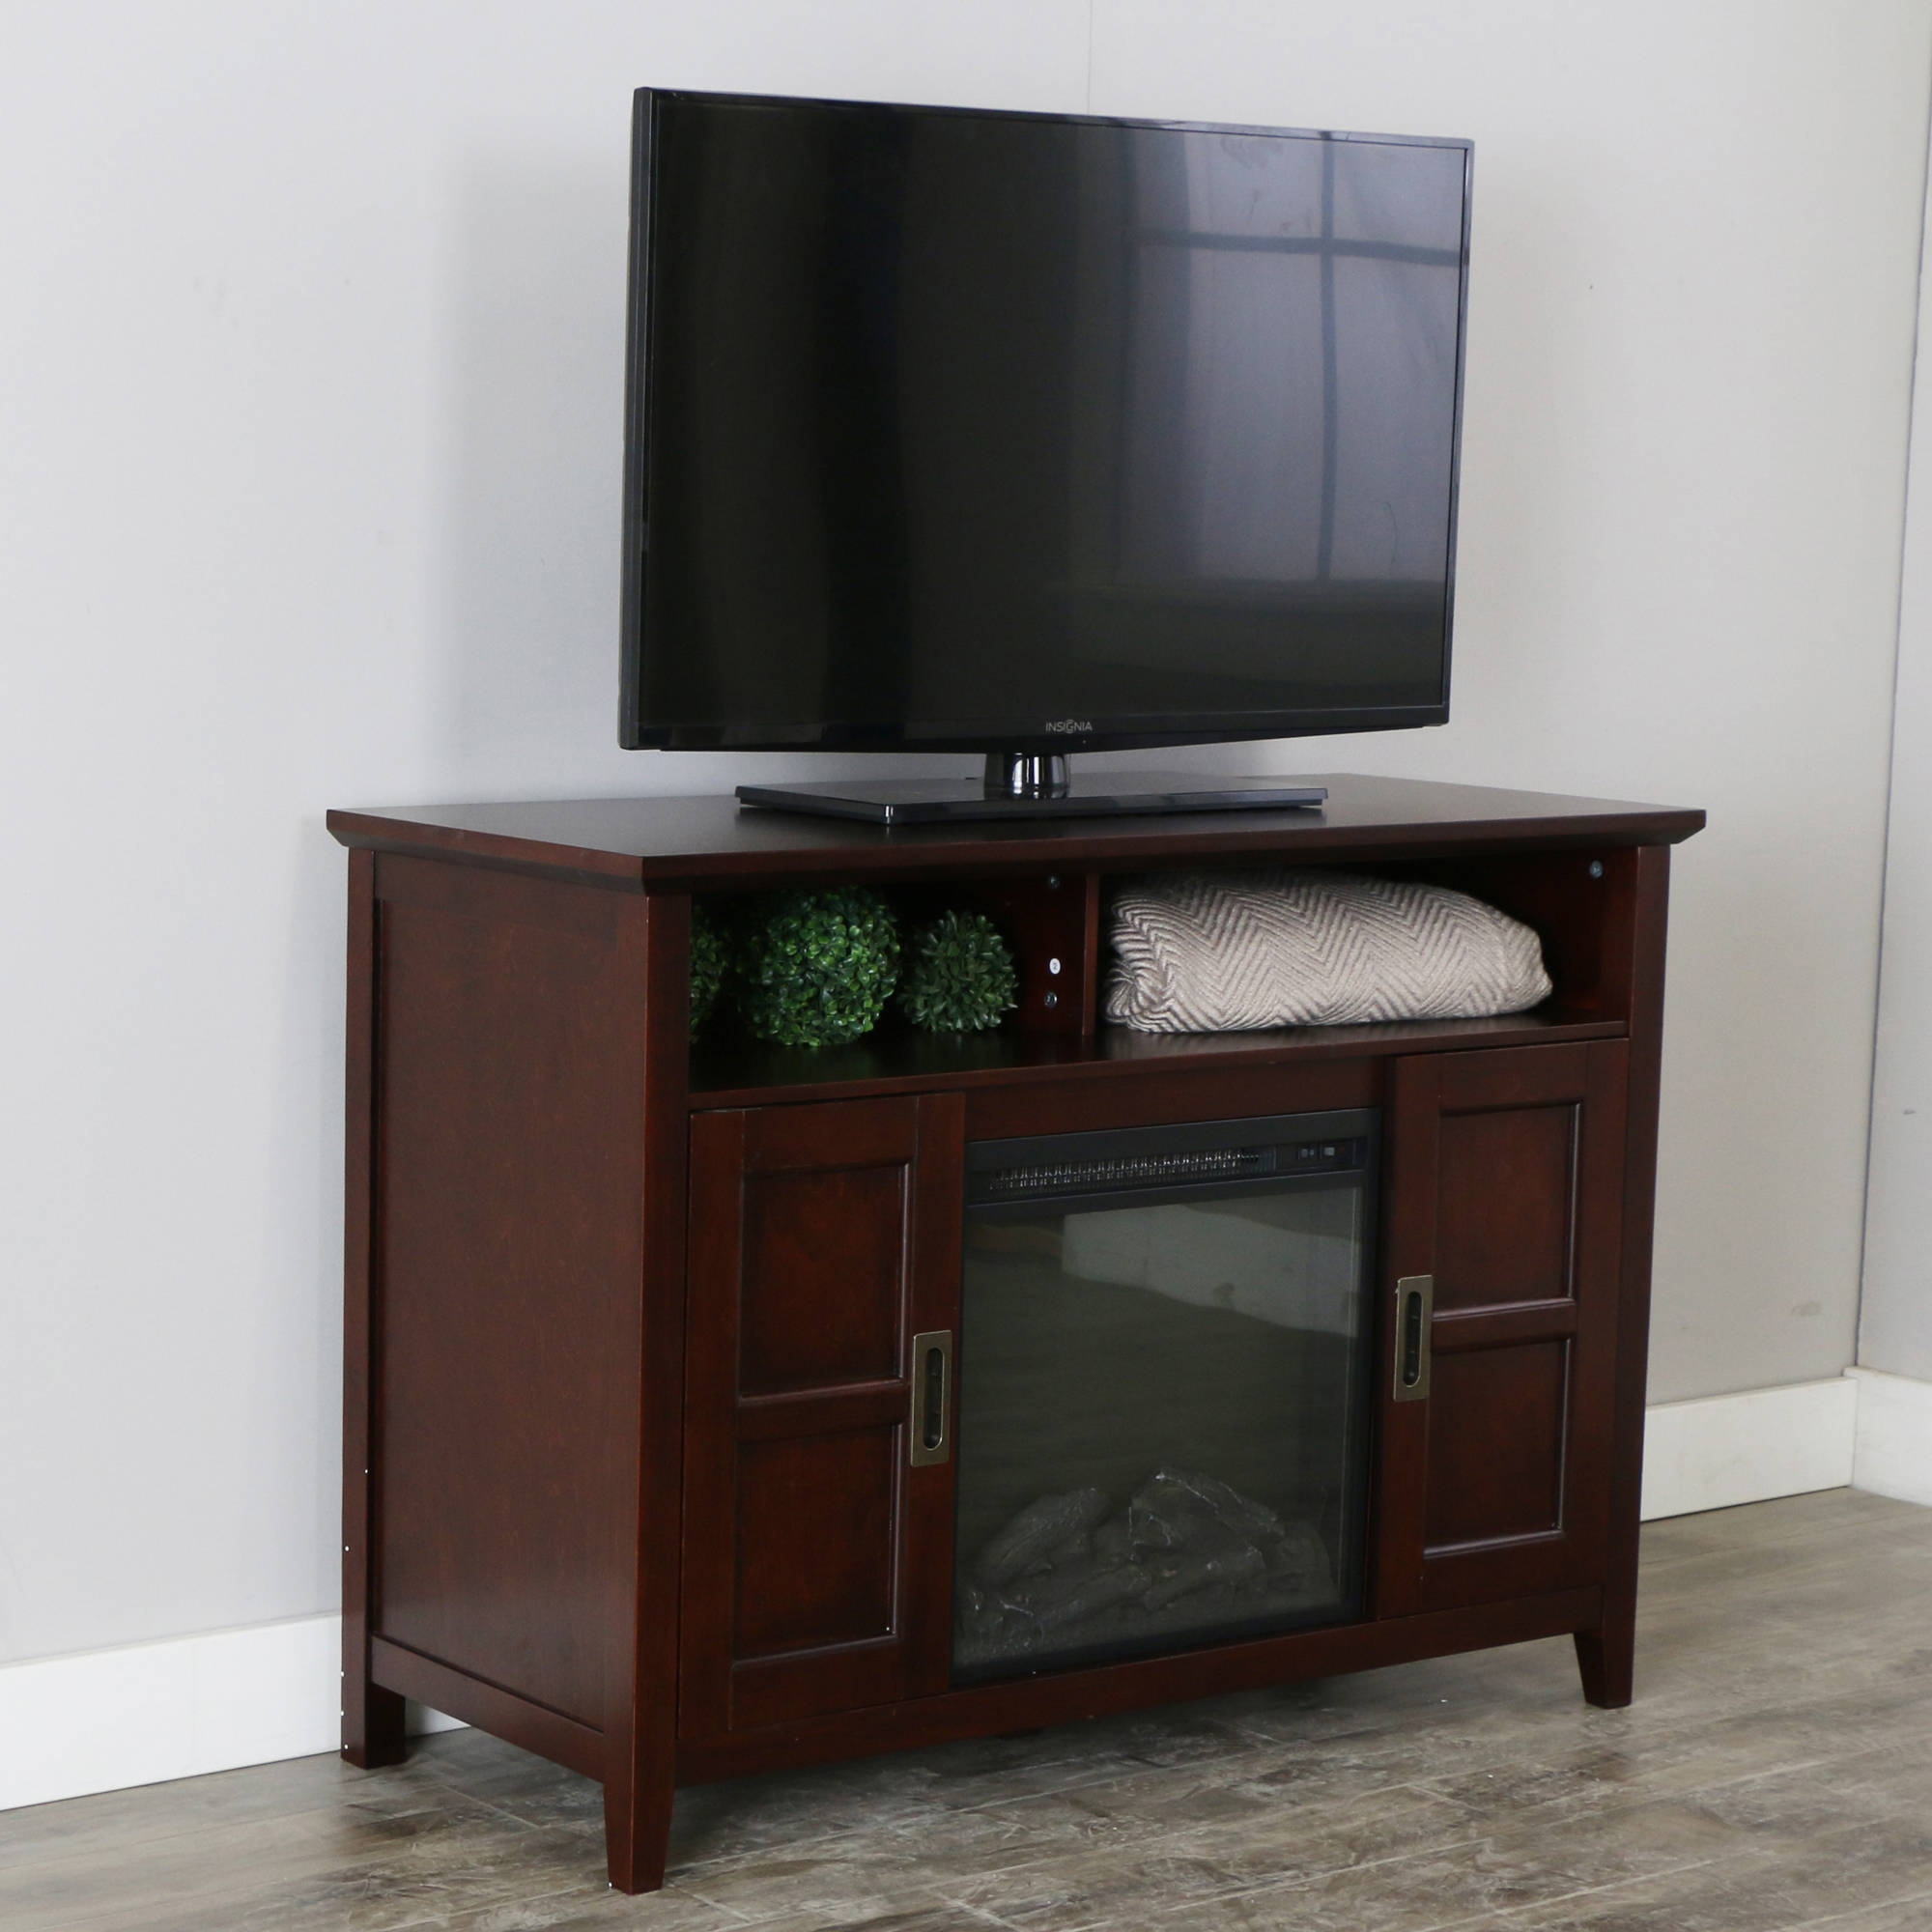 """Walker Edison 52"""" Rustic Chic Fireplace TV Stand for TVs up to 55"""" - Coffee Brown"""